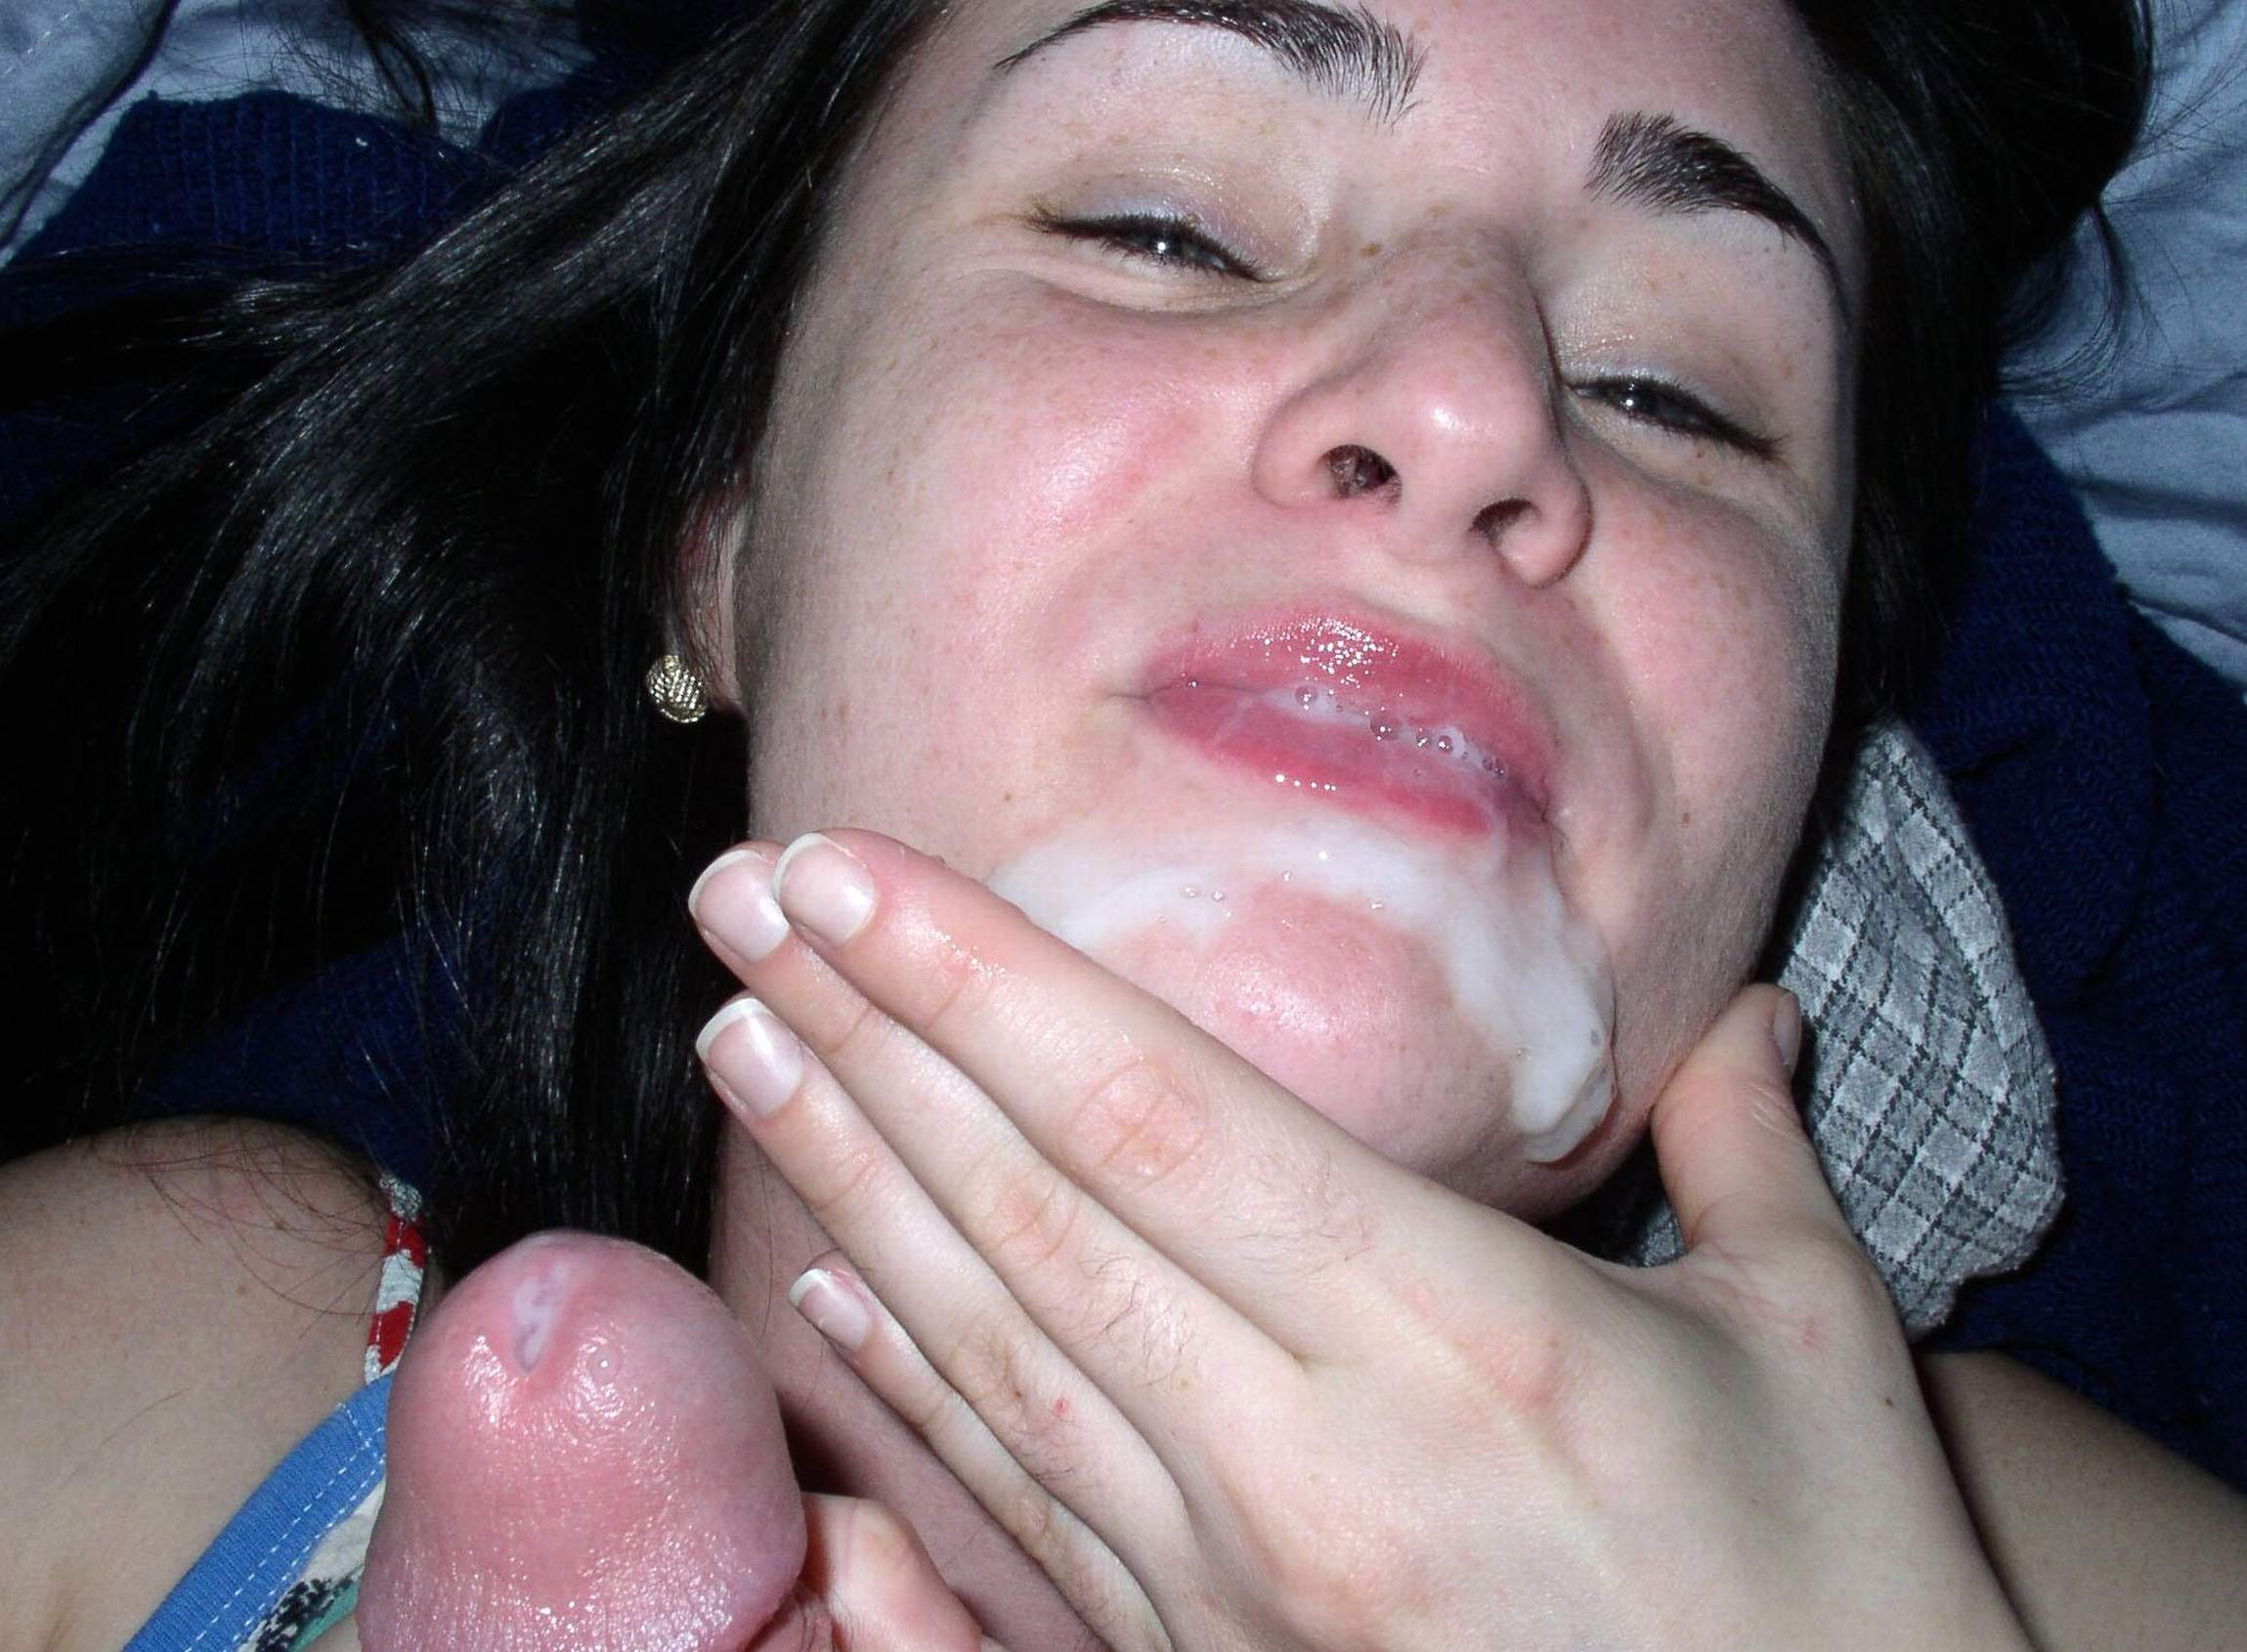 So Cumshot far Homemade Best